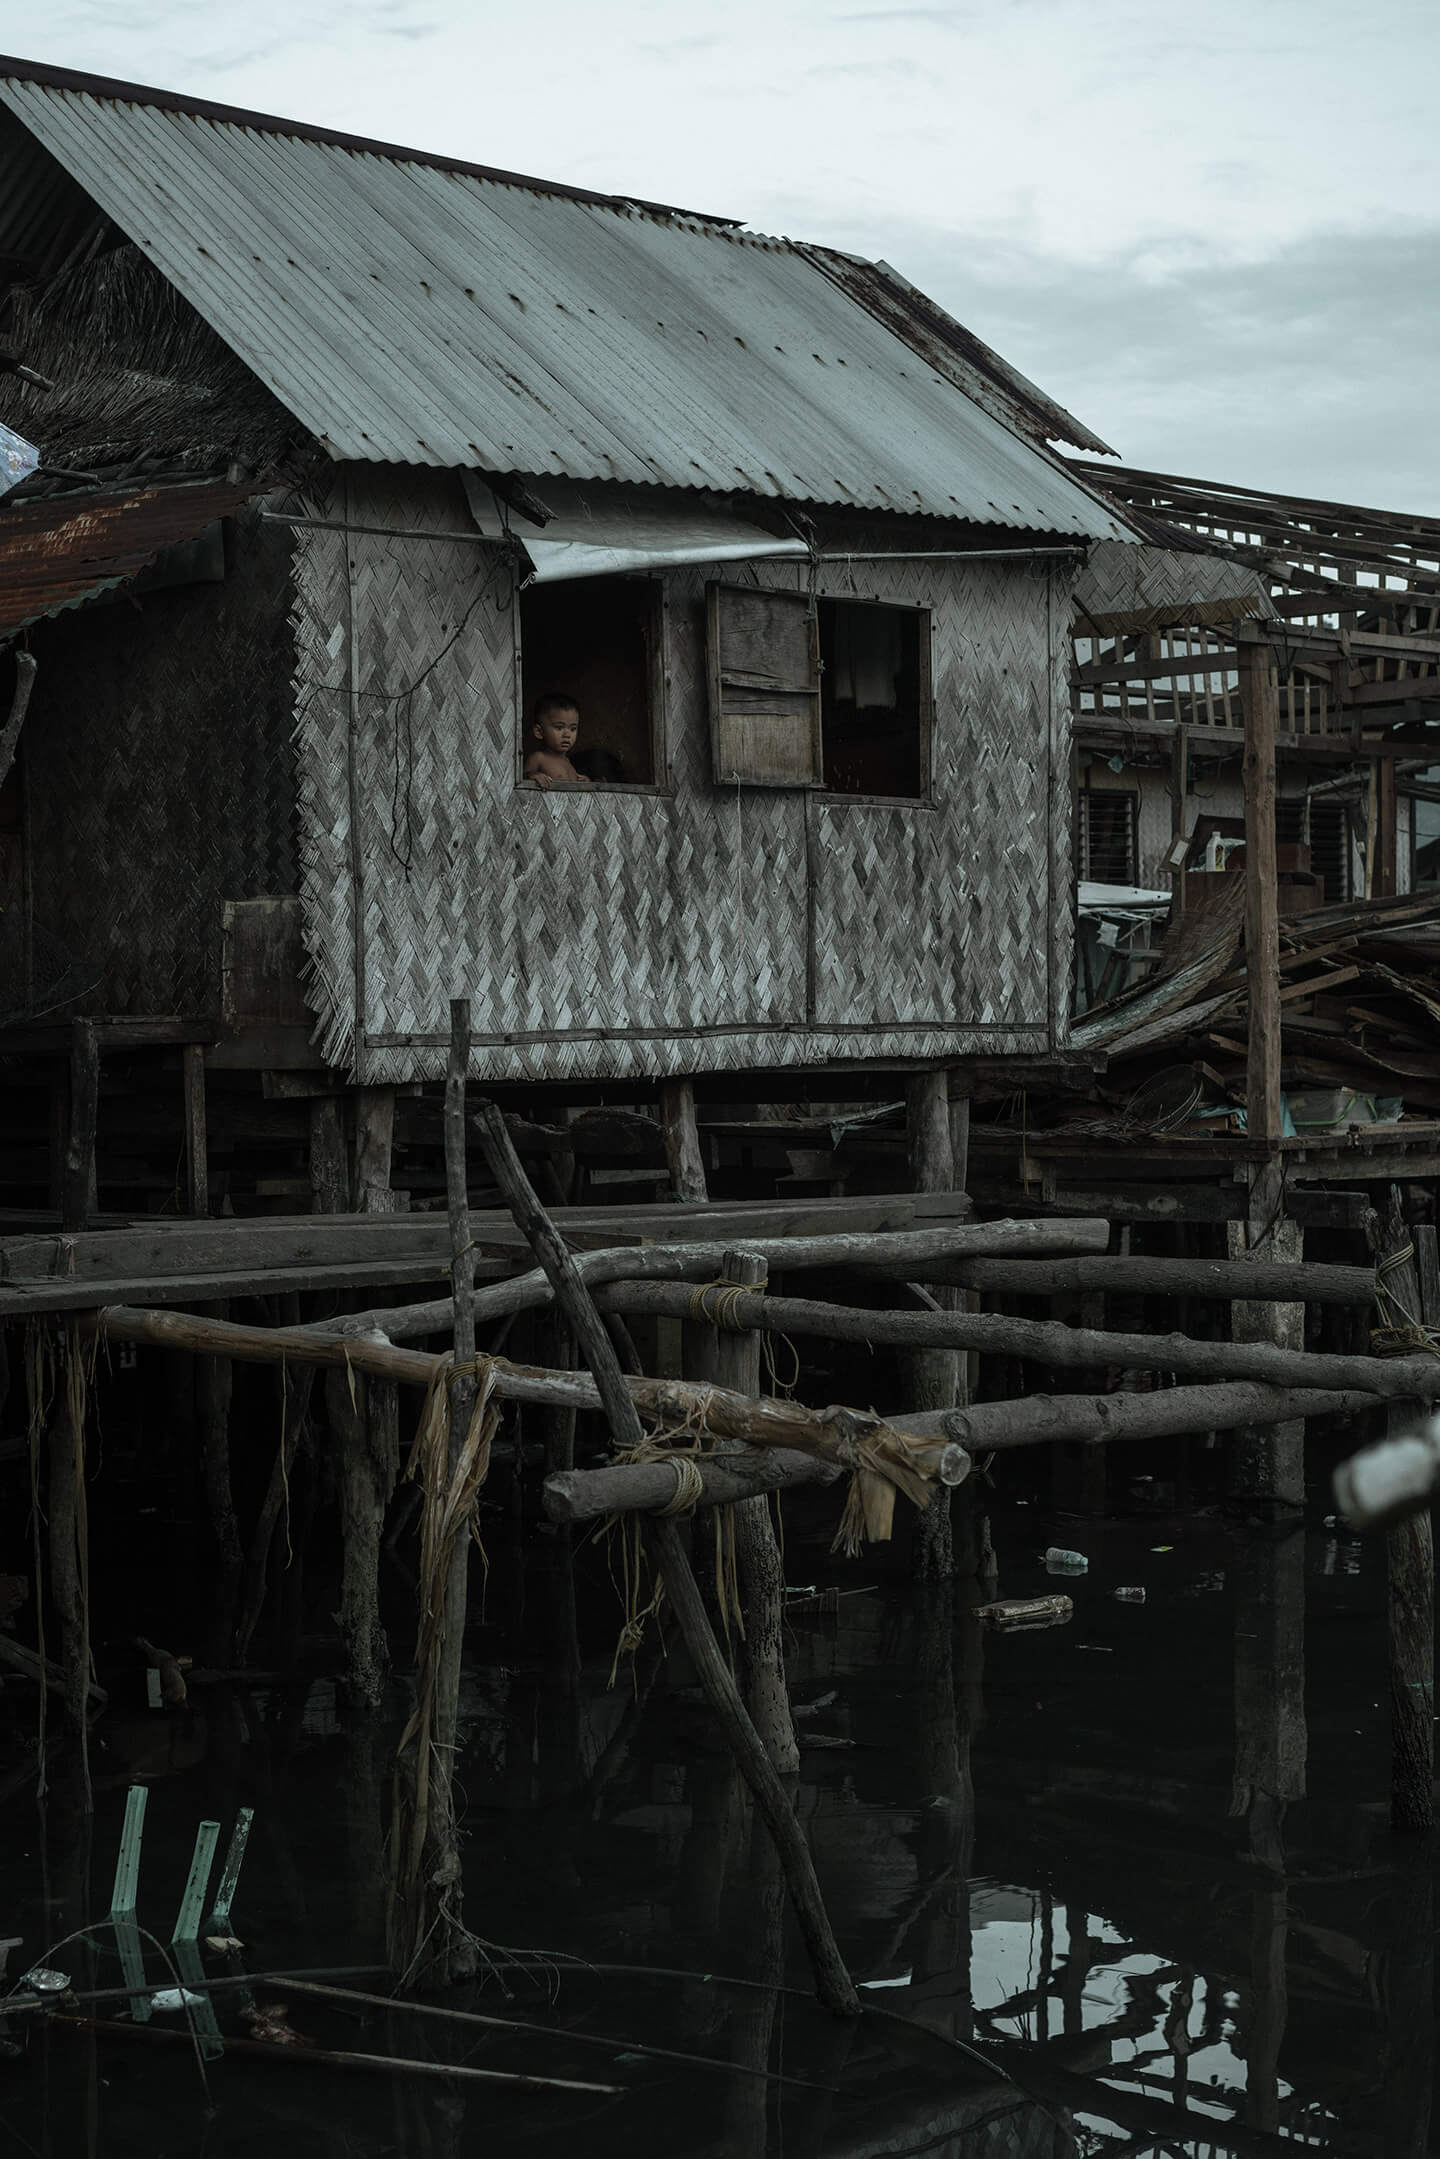 A small child looks over the window of their house on stilts above the water.